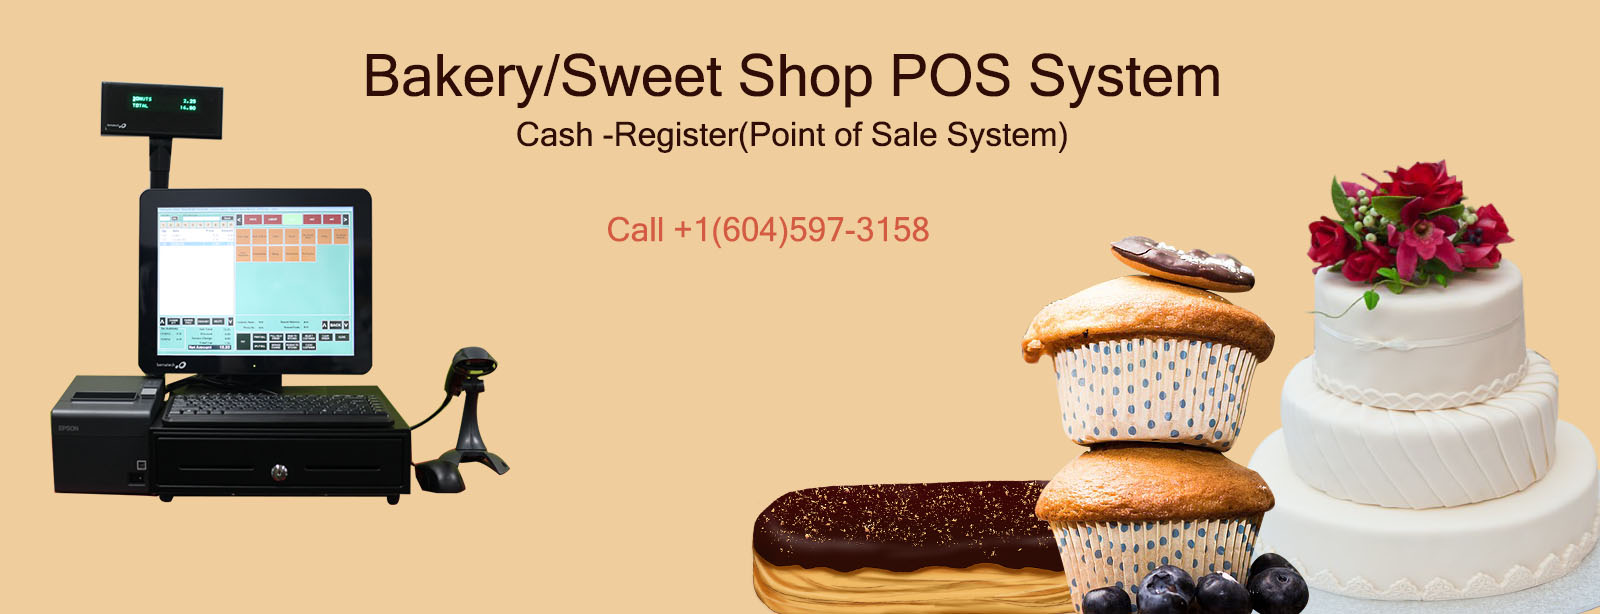 Bakery/Sweet Shop POS System, Cash Register, Point of Sale System